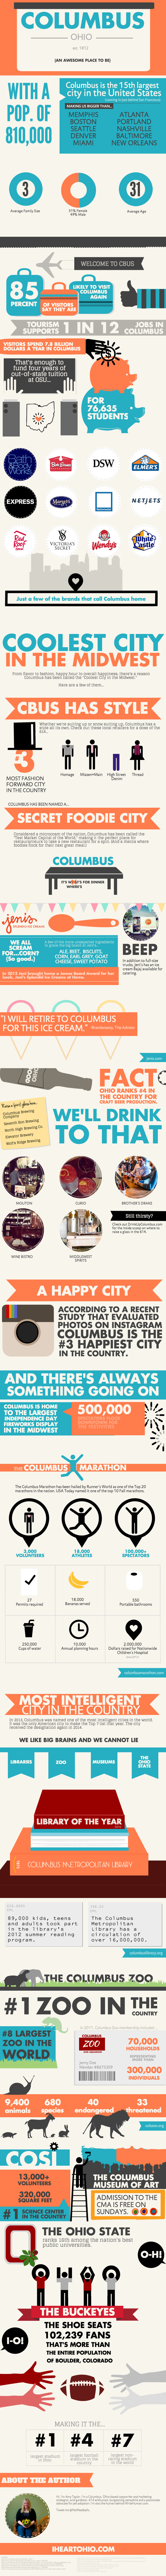 columbus ohio infographic